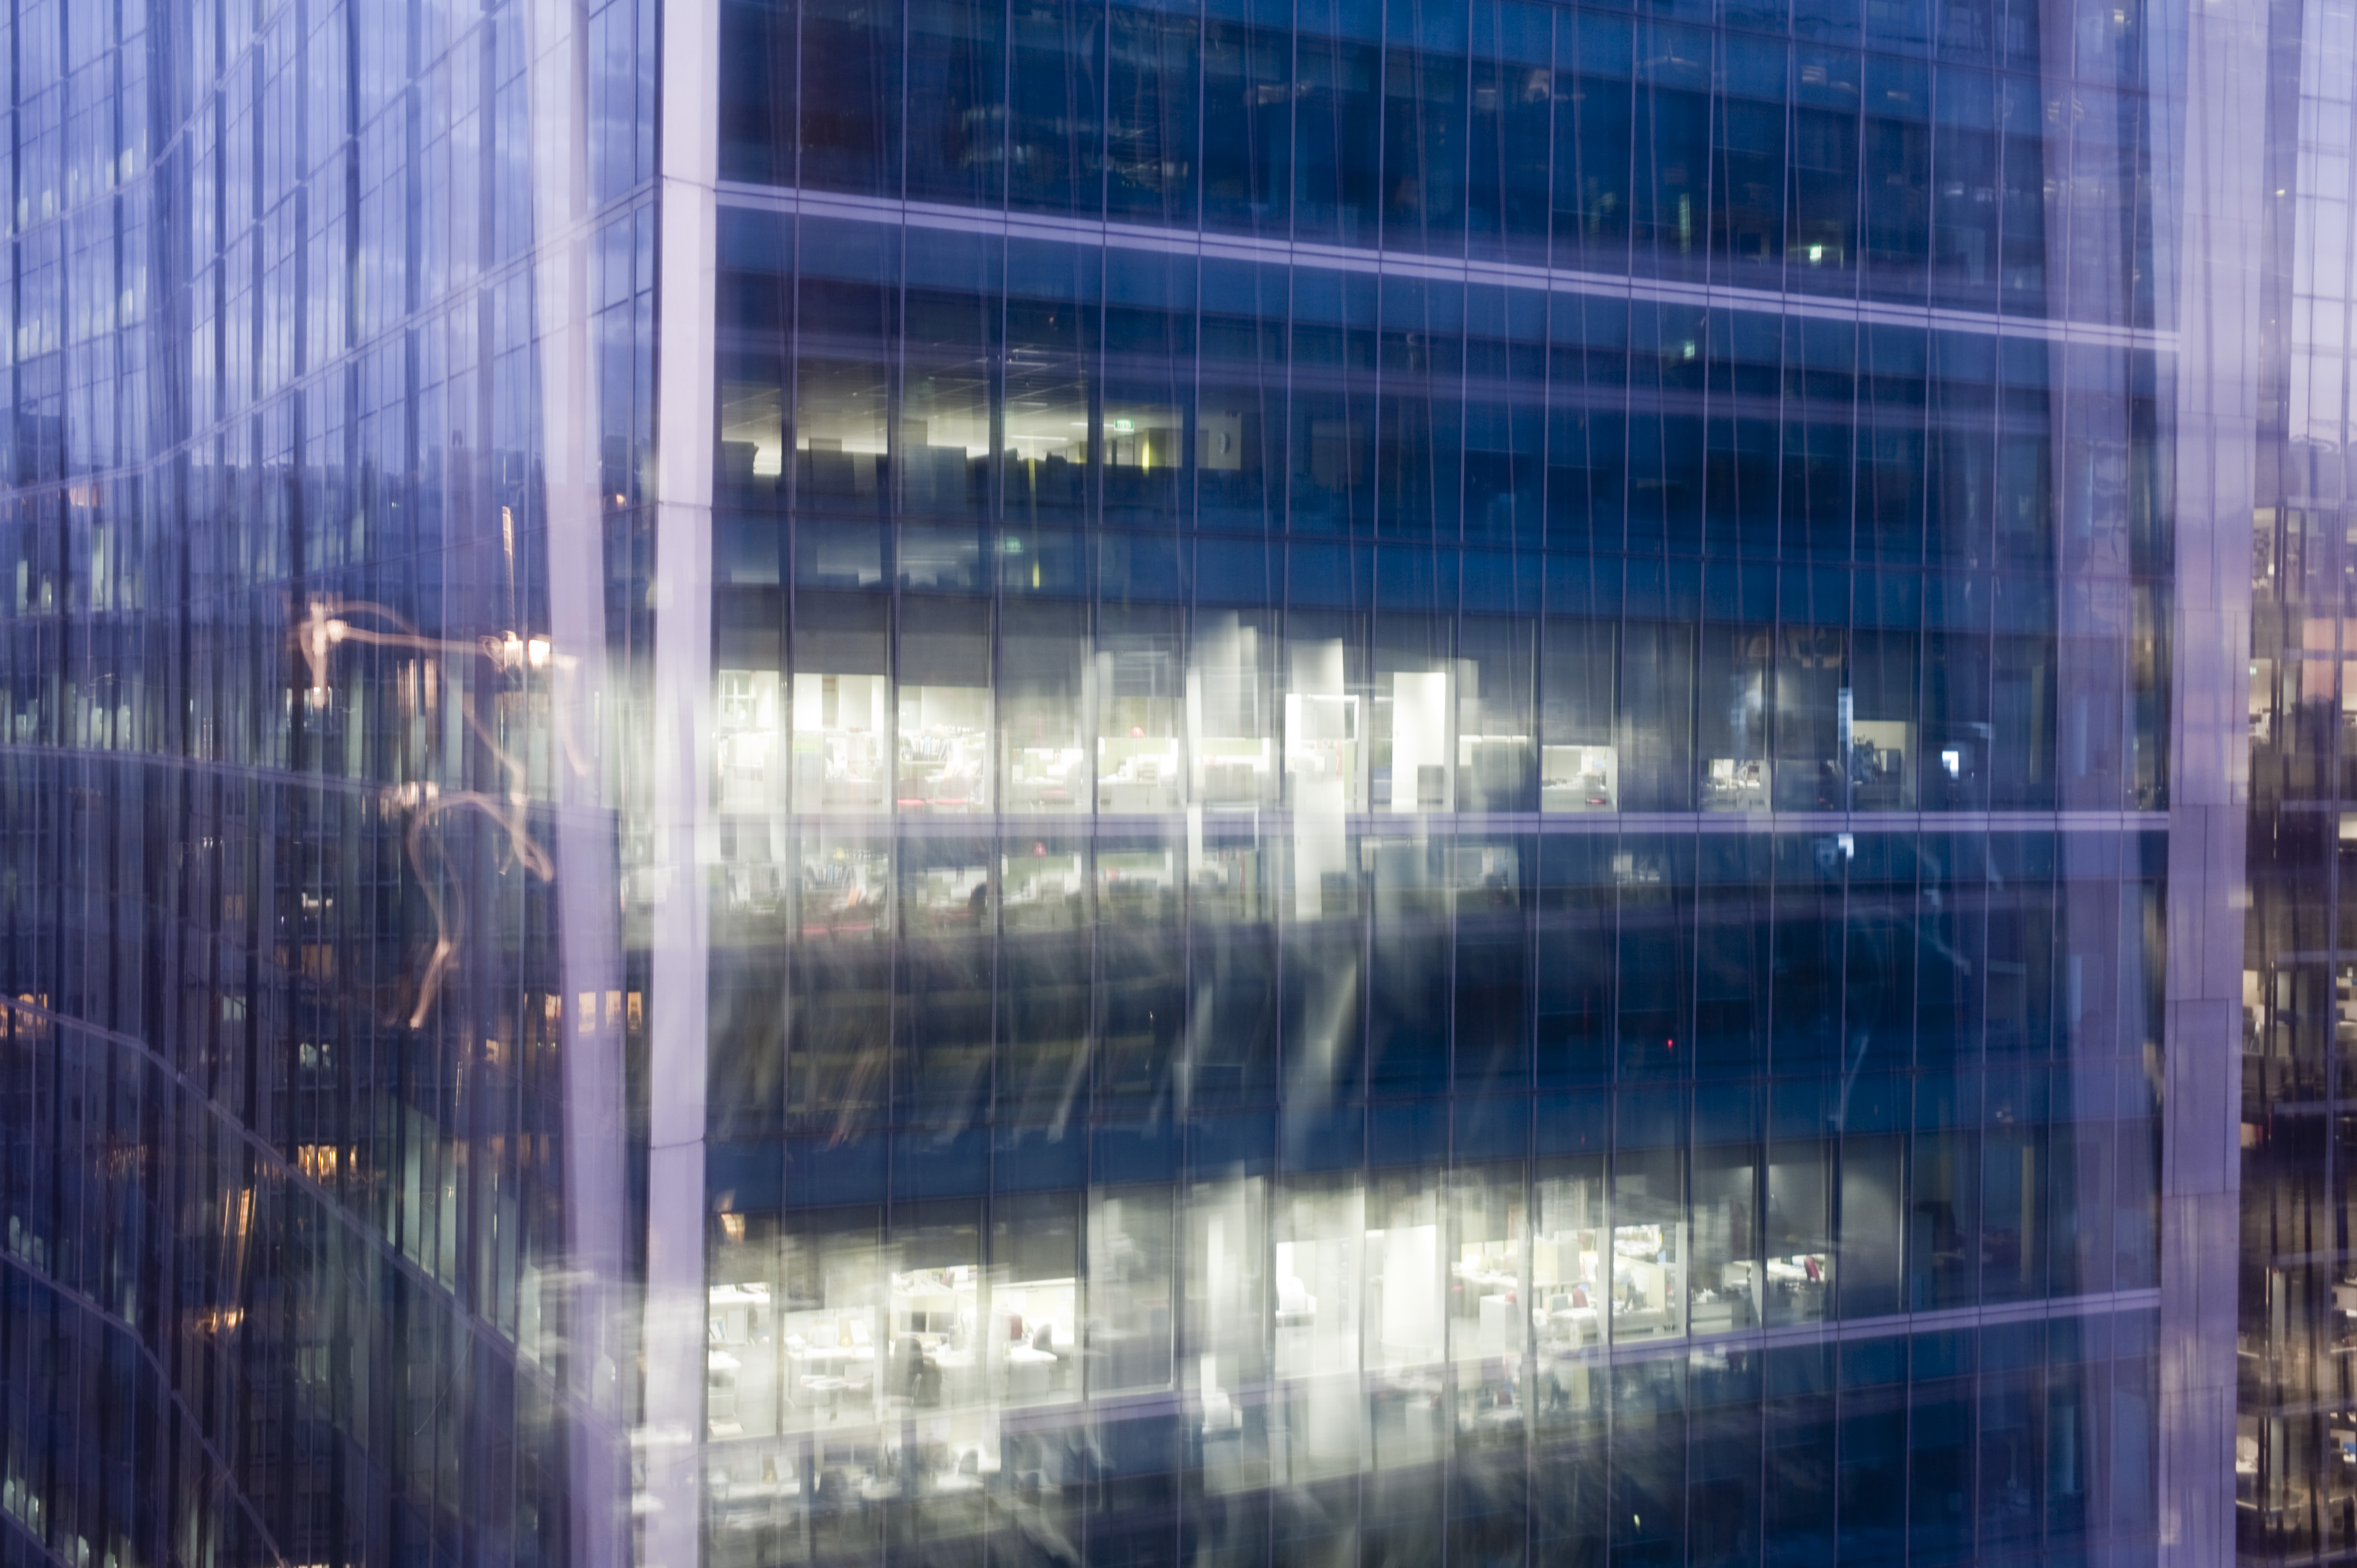 modern office building with abstract multiple exposure and glowing light effect